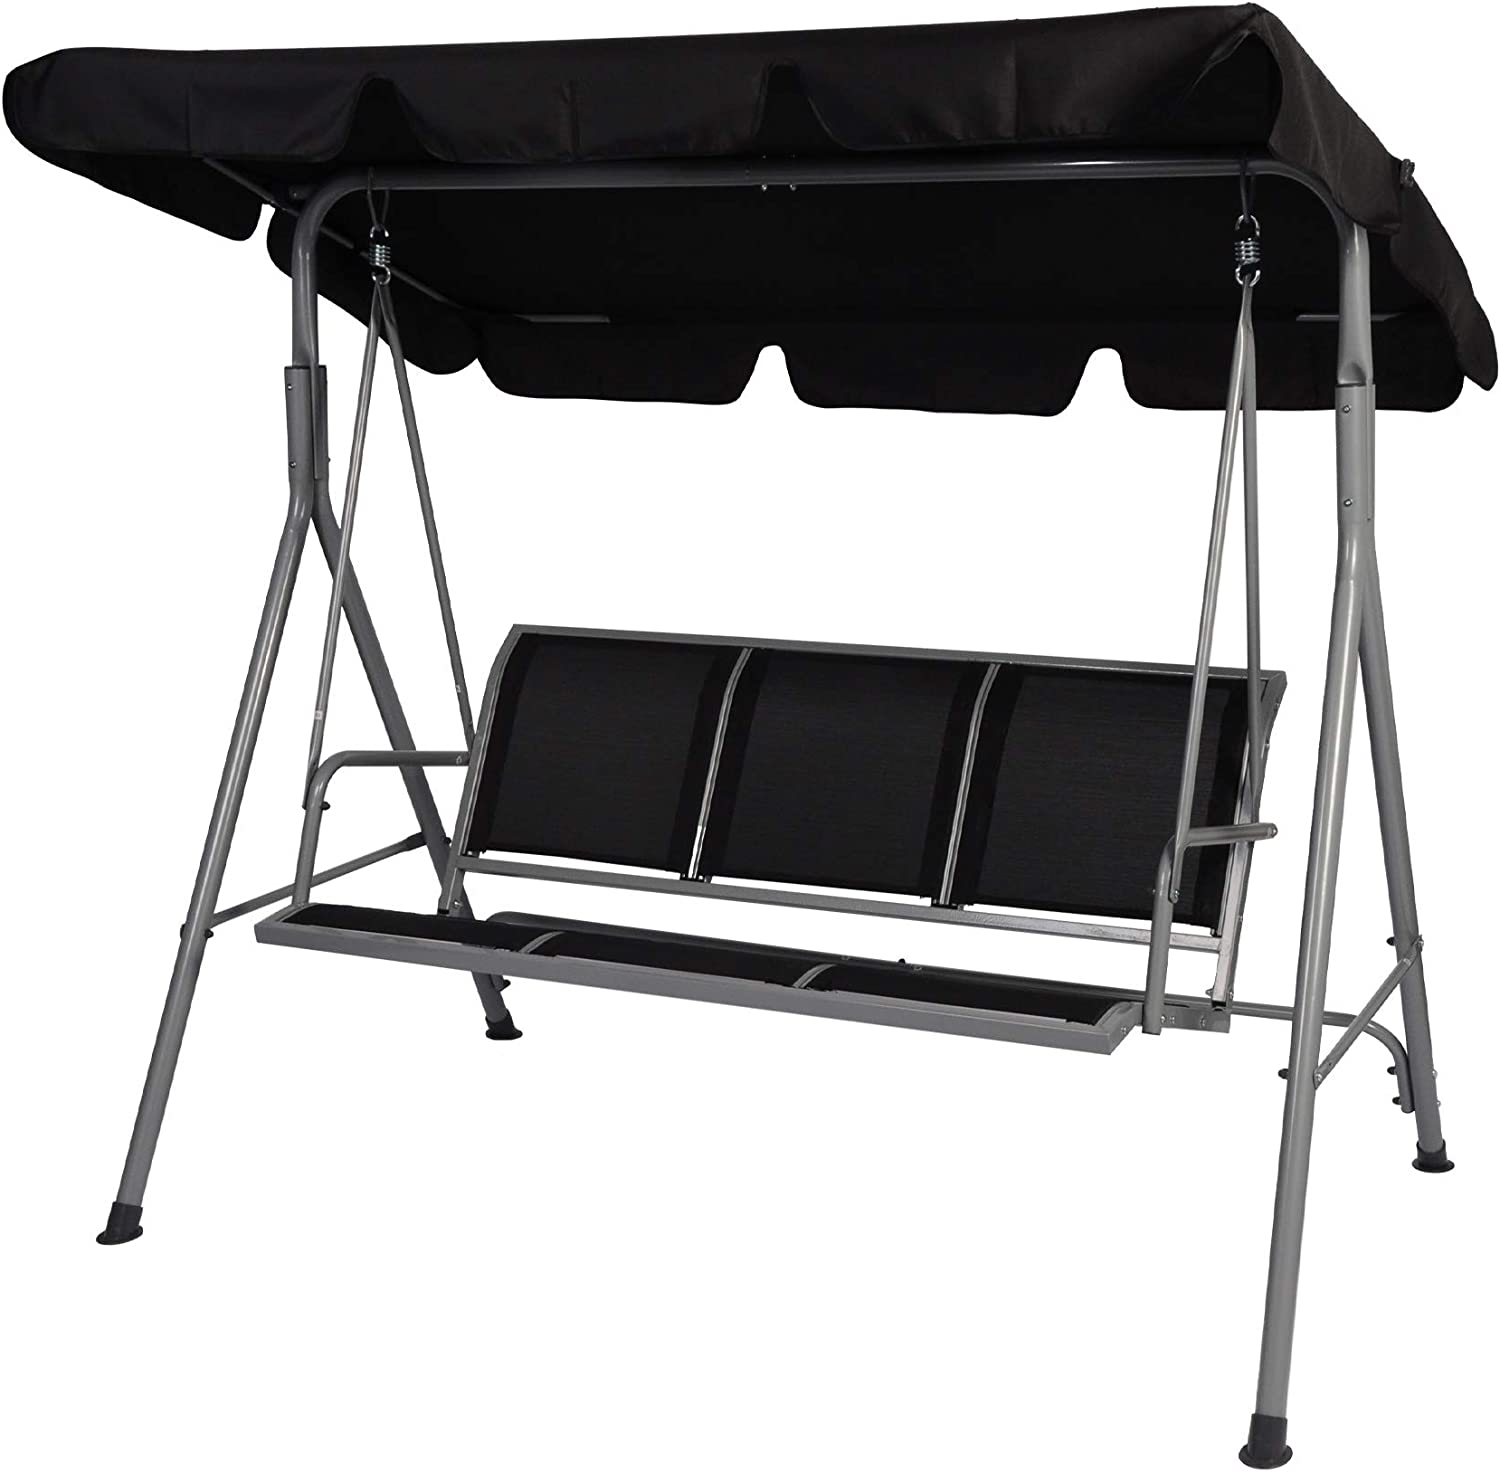 LUCKYERMORE 3 Person Patio Swing with Convertible Canopy-Weather Resistant Frame and Breathable Seat, Comfy Outdoor Swing Chair Bench for Porch Backyard Garden, Black